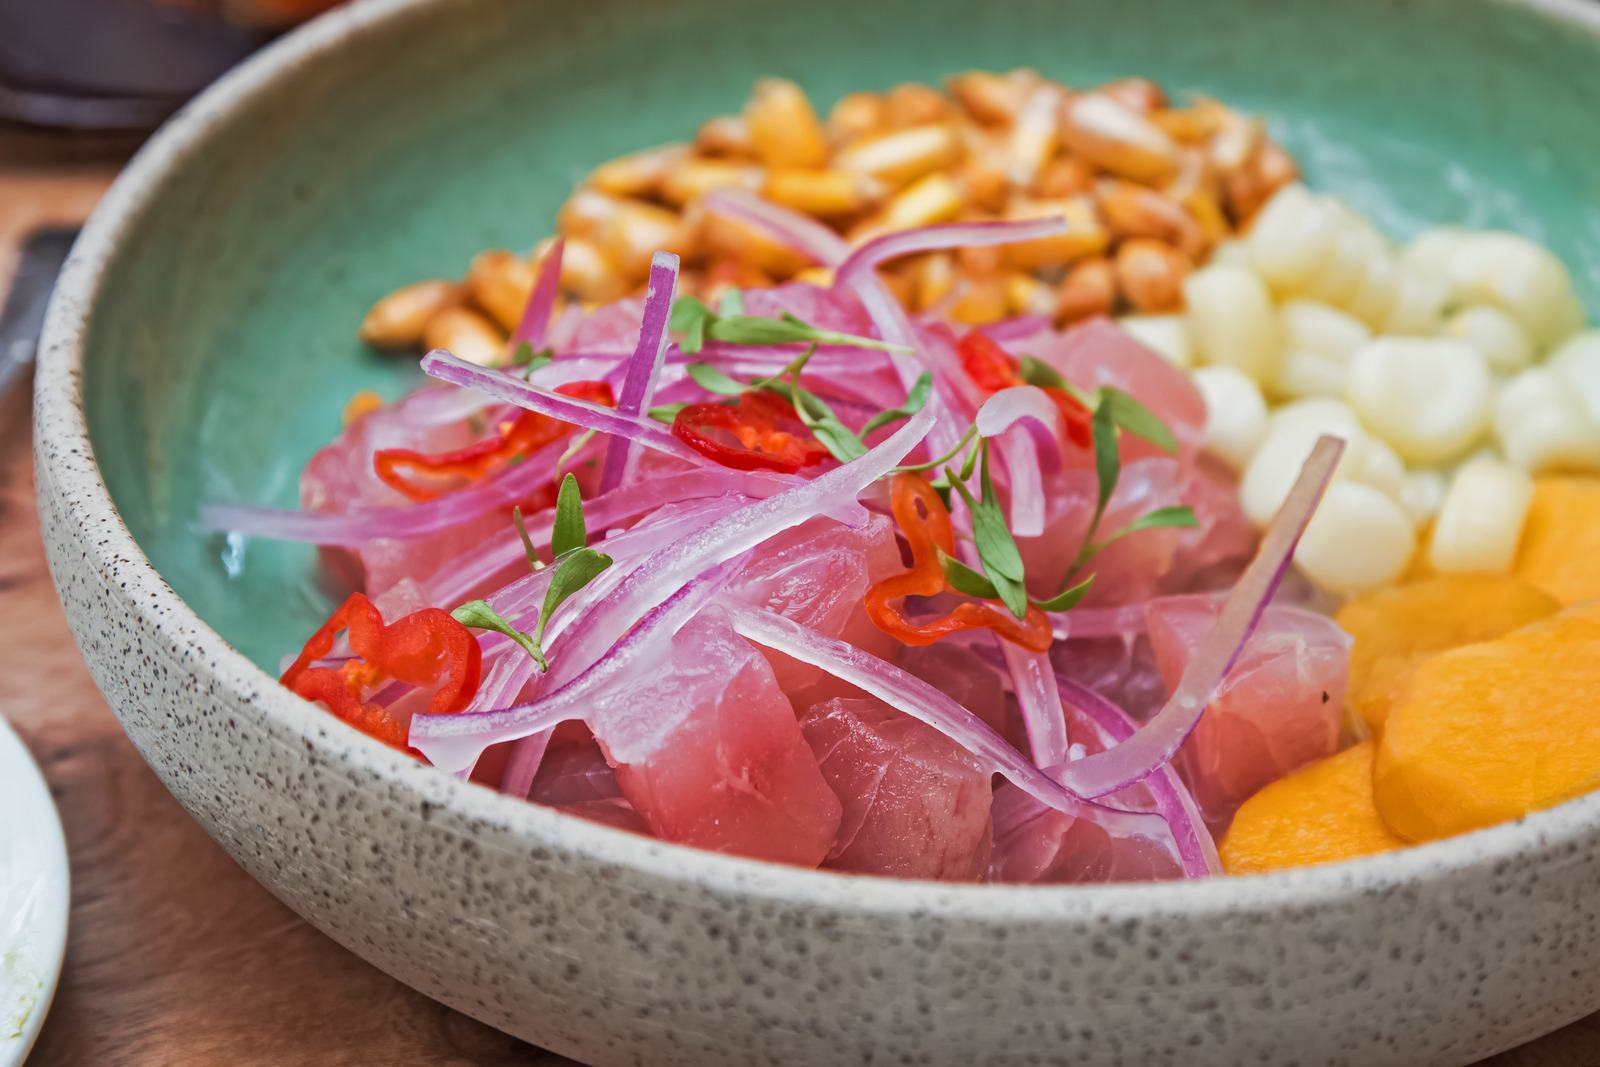 Popular Peruvian food, ceviche